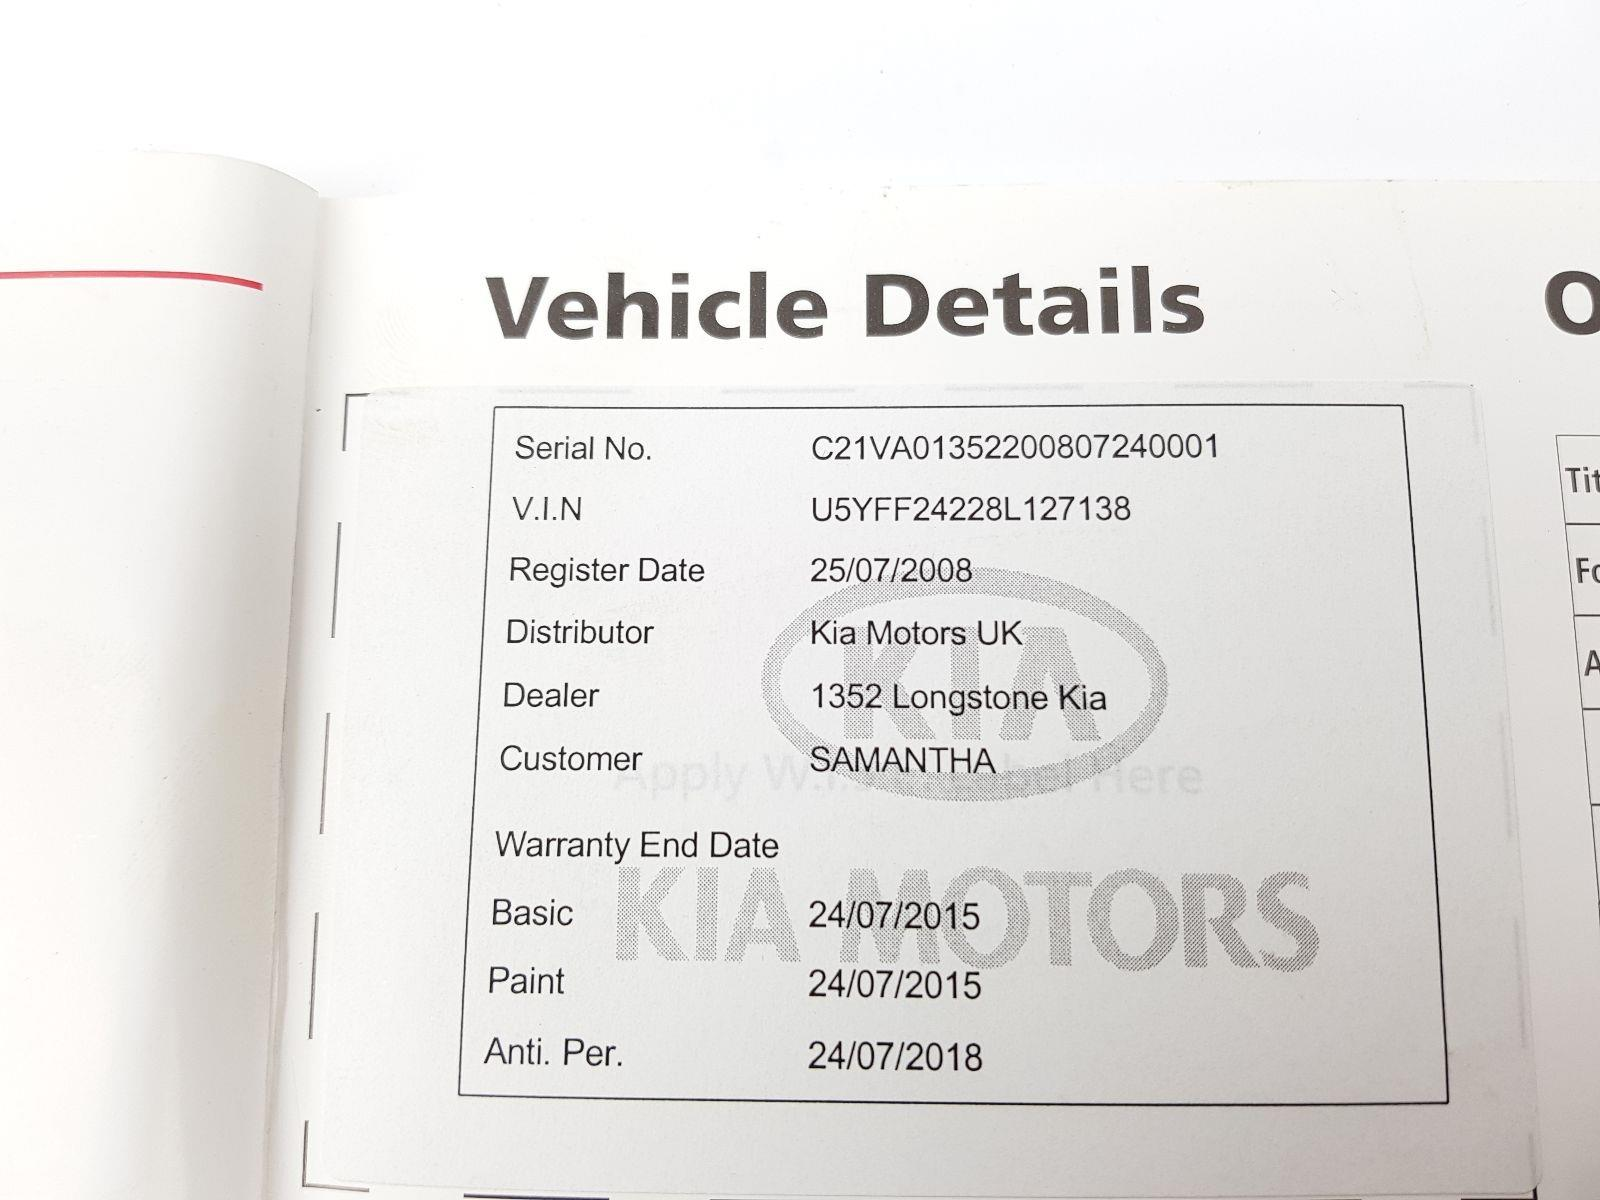 kia ceed 2007 to 2012 book pack petrol manual for sale from scb rh scbvehicledismantlers co uk kia ceed service manual pdf kia ceed sw service manual